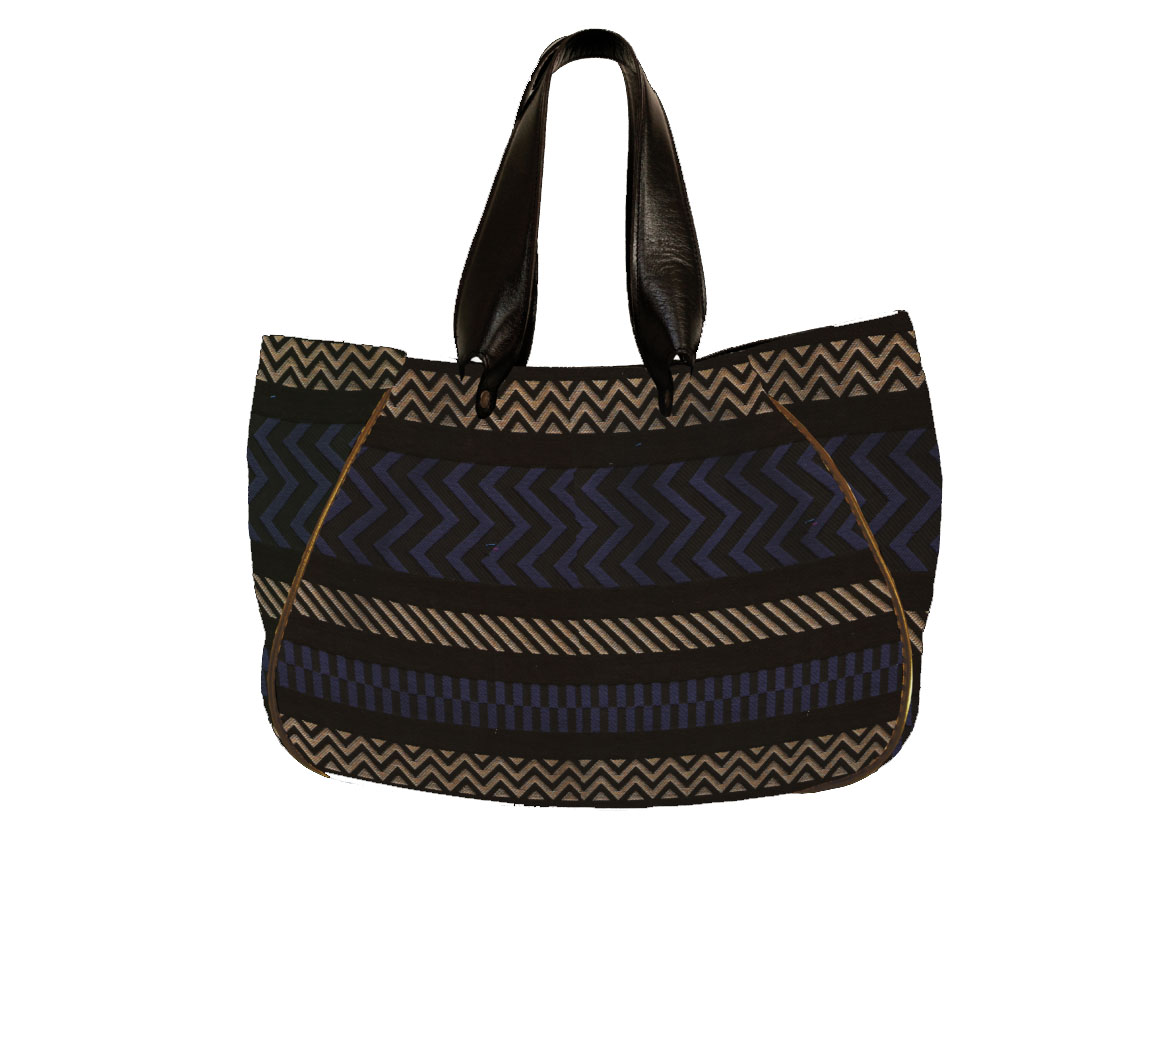 Sac à main vegan Hobo Jacquard